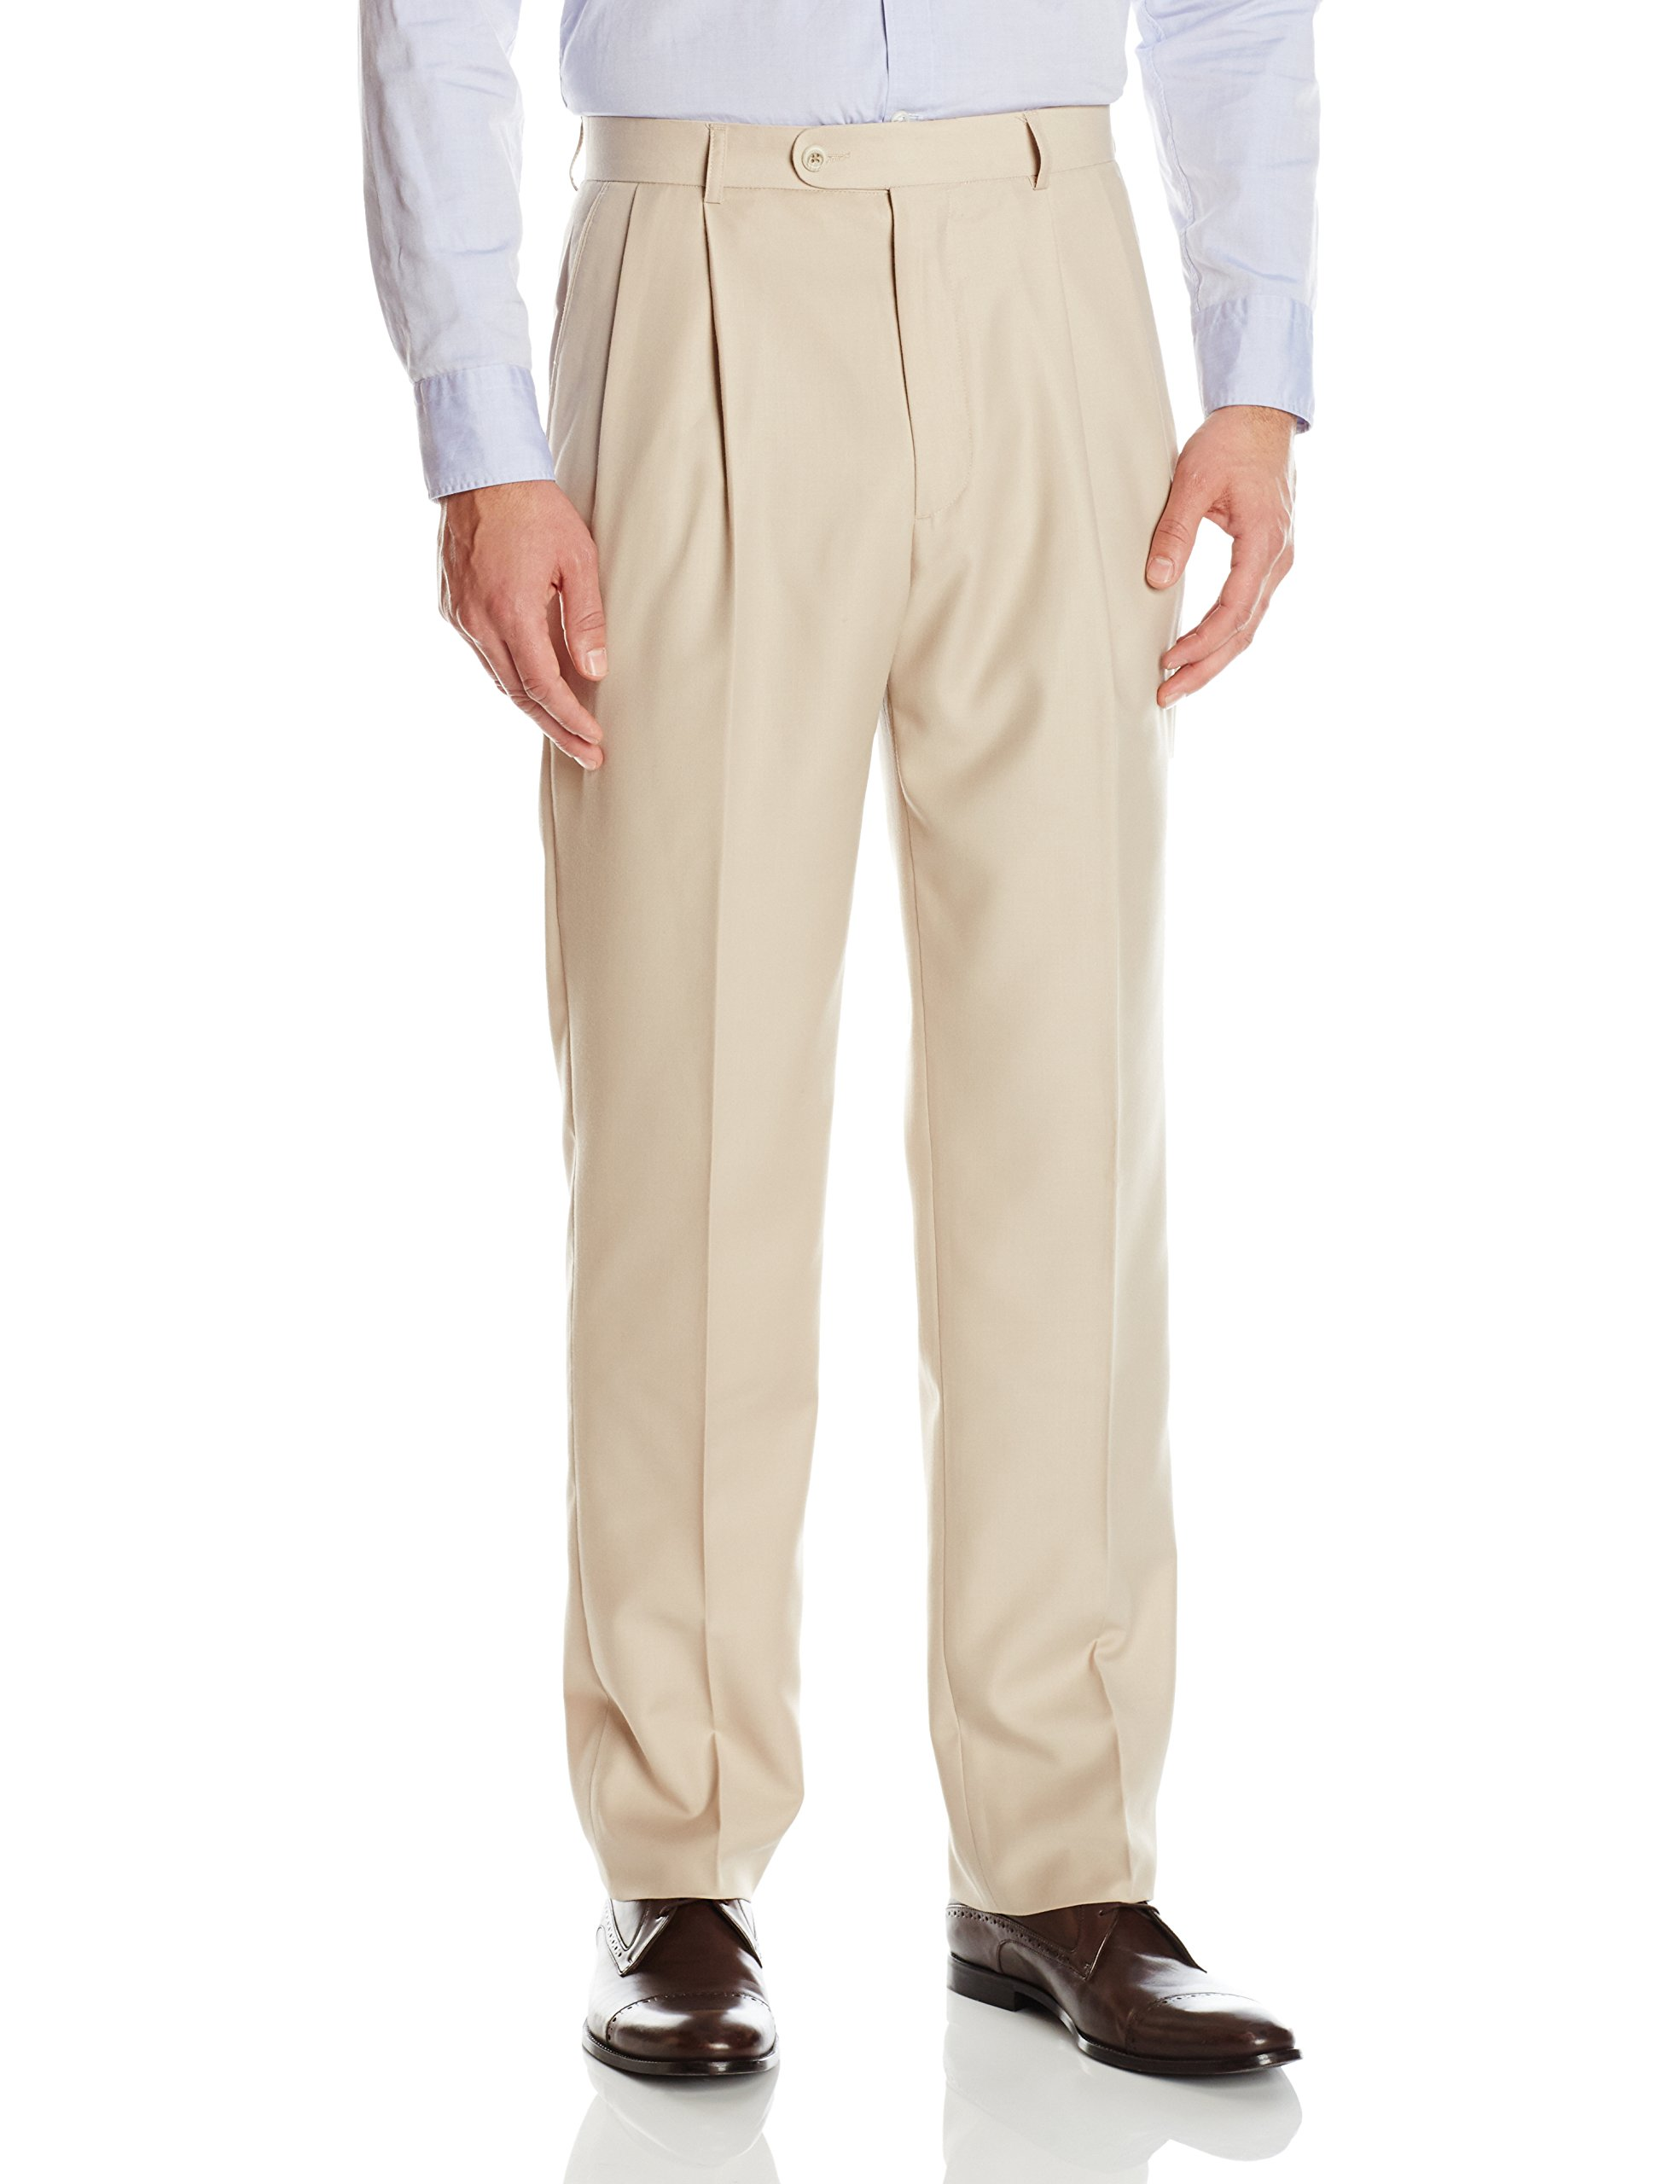 Linea Naturale Men's Pleated Travel Genius Microfiber Trouser, Tan, 33W